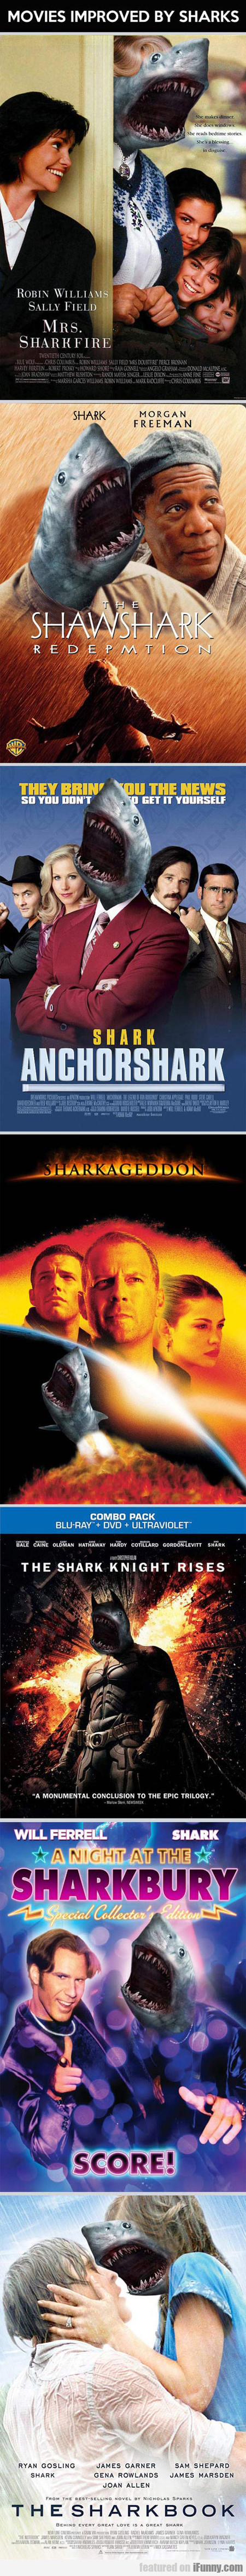 Movies Improved By Sharks - Part 1